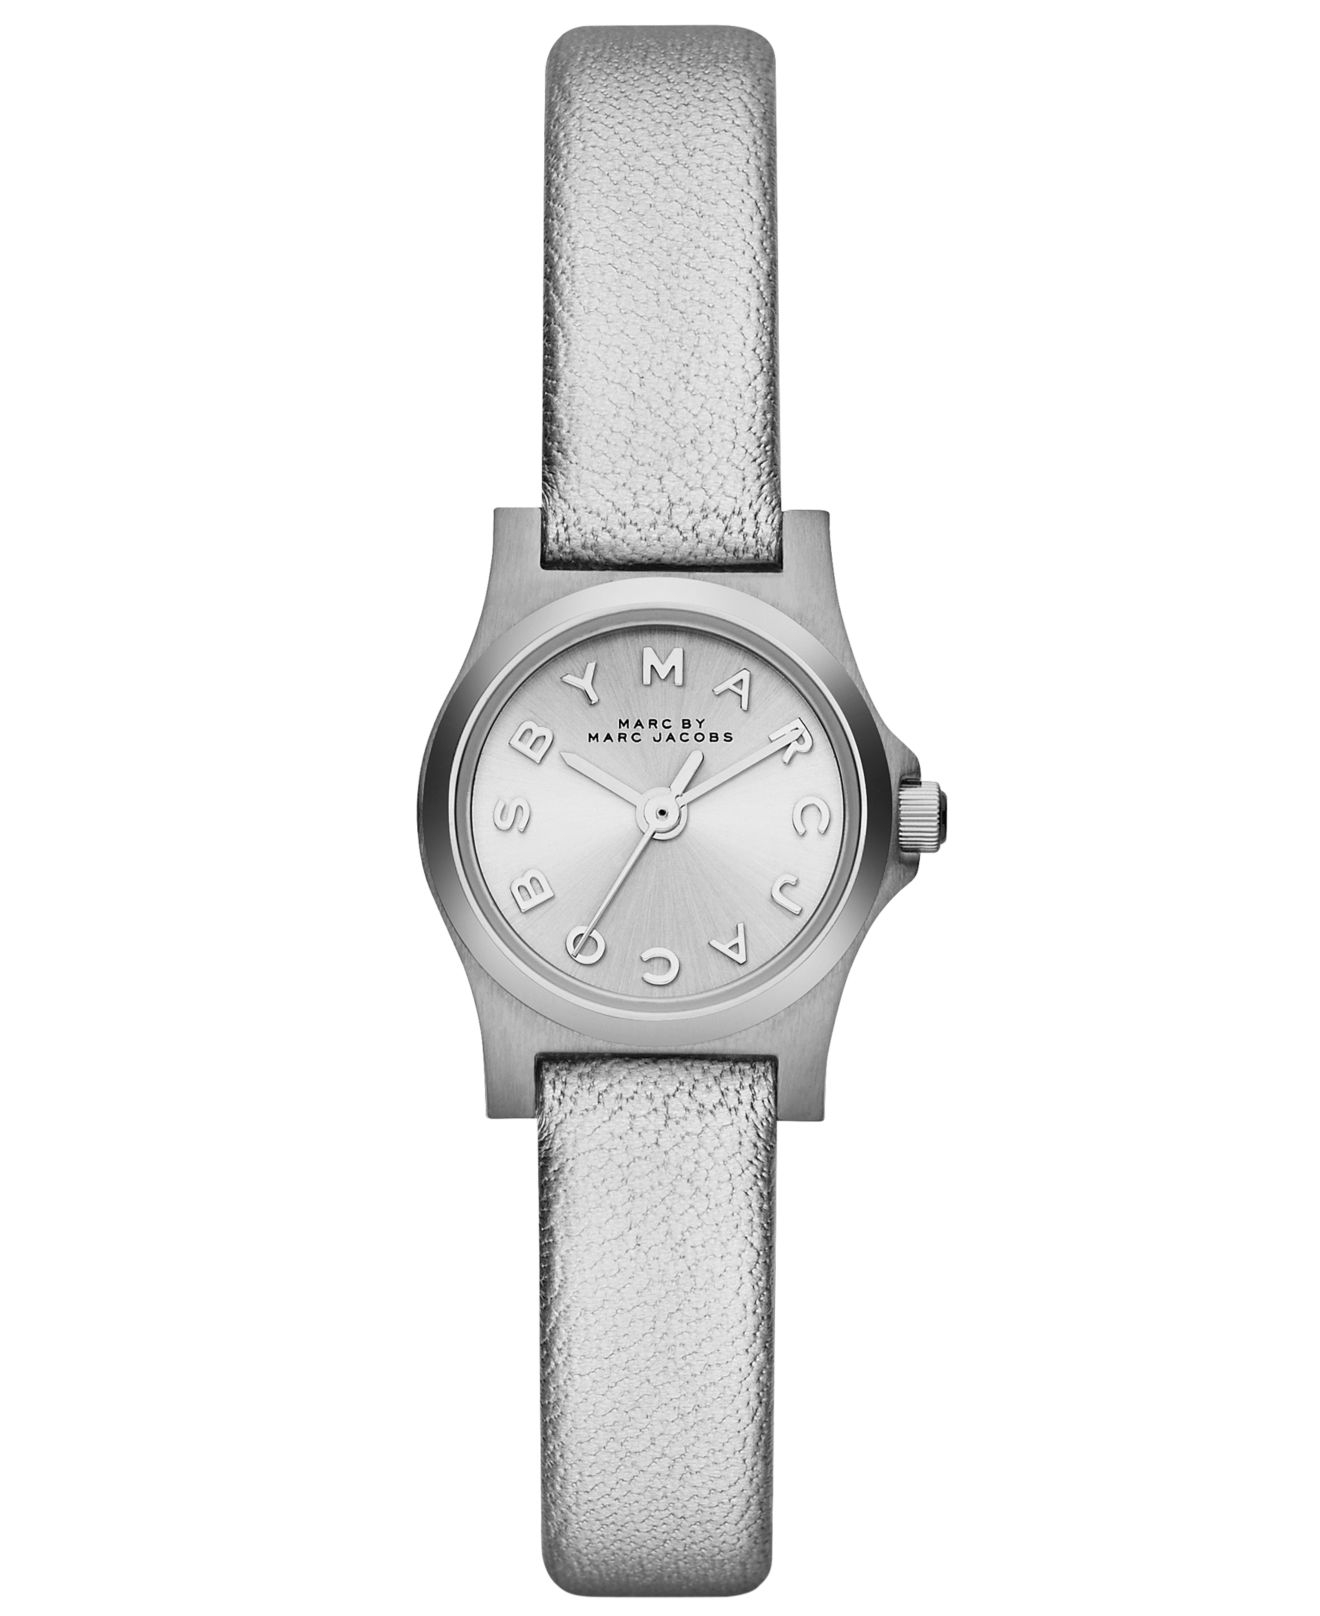 094e0d1d249d7 Marc By Marc Jacobs Women's Henry Dinky Silver Metallic Leather ...